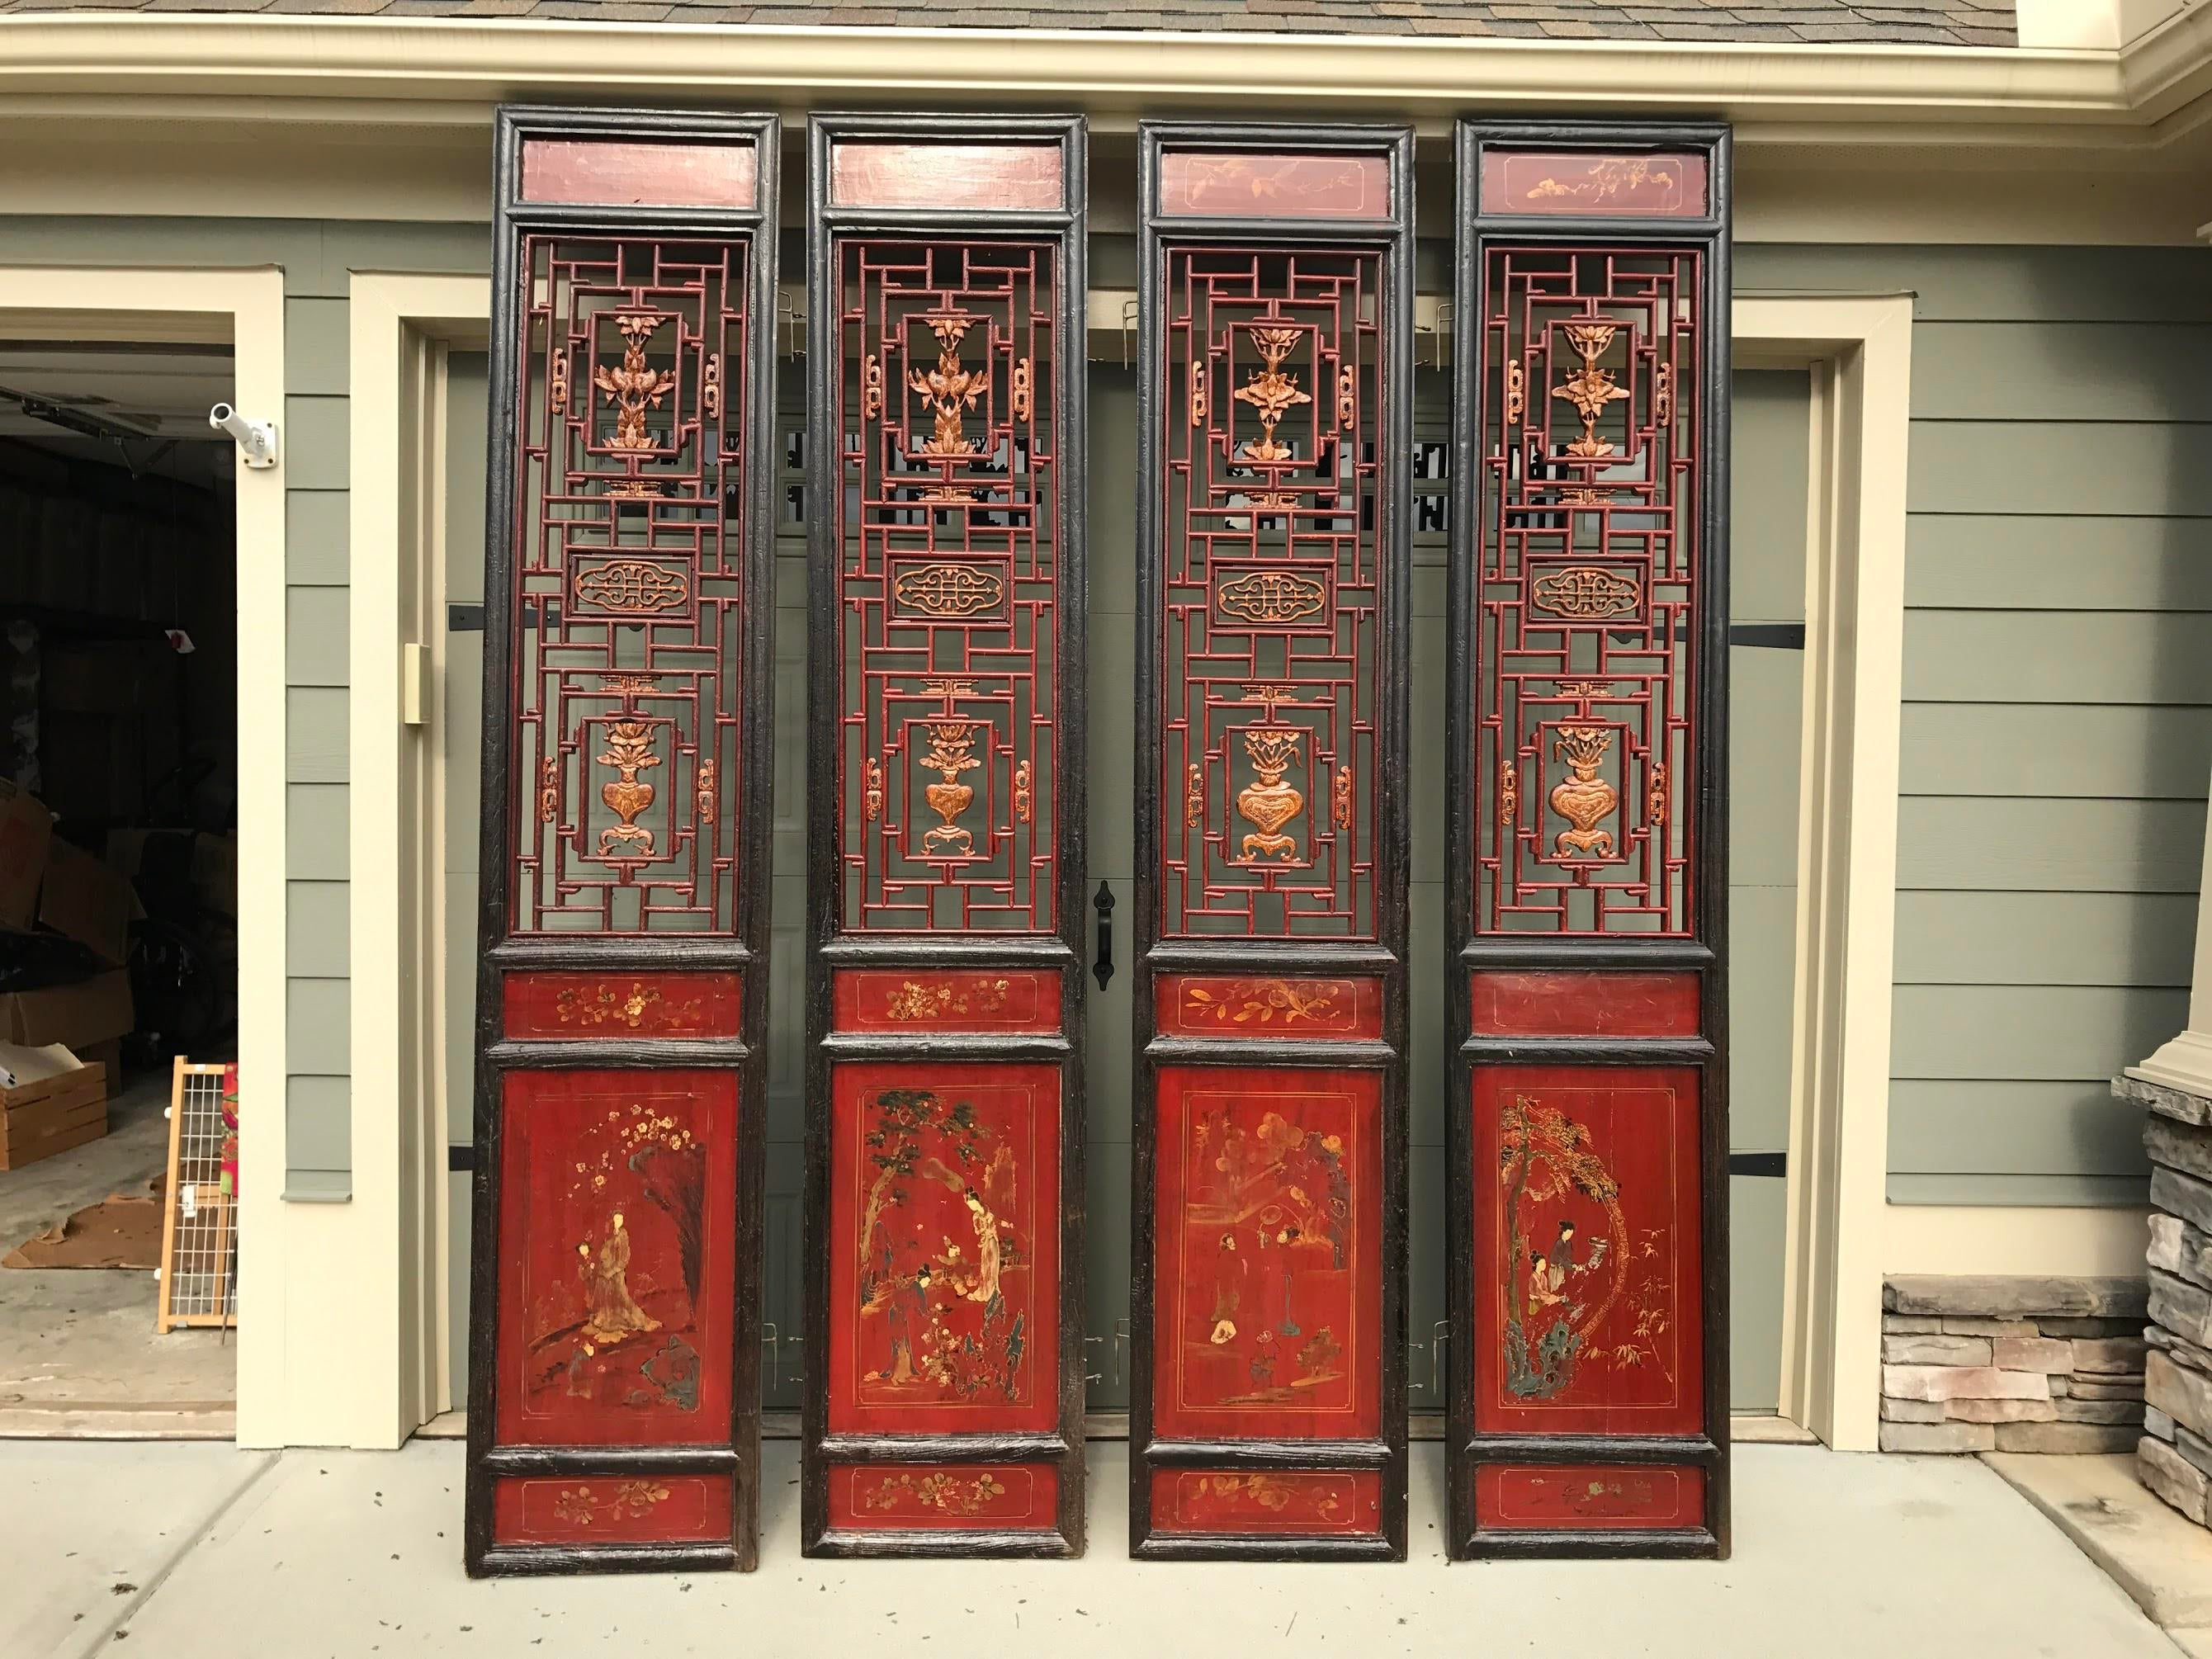 Qing Dynasty Chinese Lacquer Painted Folding Exterior Doors - Set of 4 - Image 11 of  sc 1 st  Chairish & Qing Dynasty Chinese Lacquer Painted Folding Exterior Doors - Set of ...